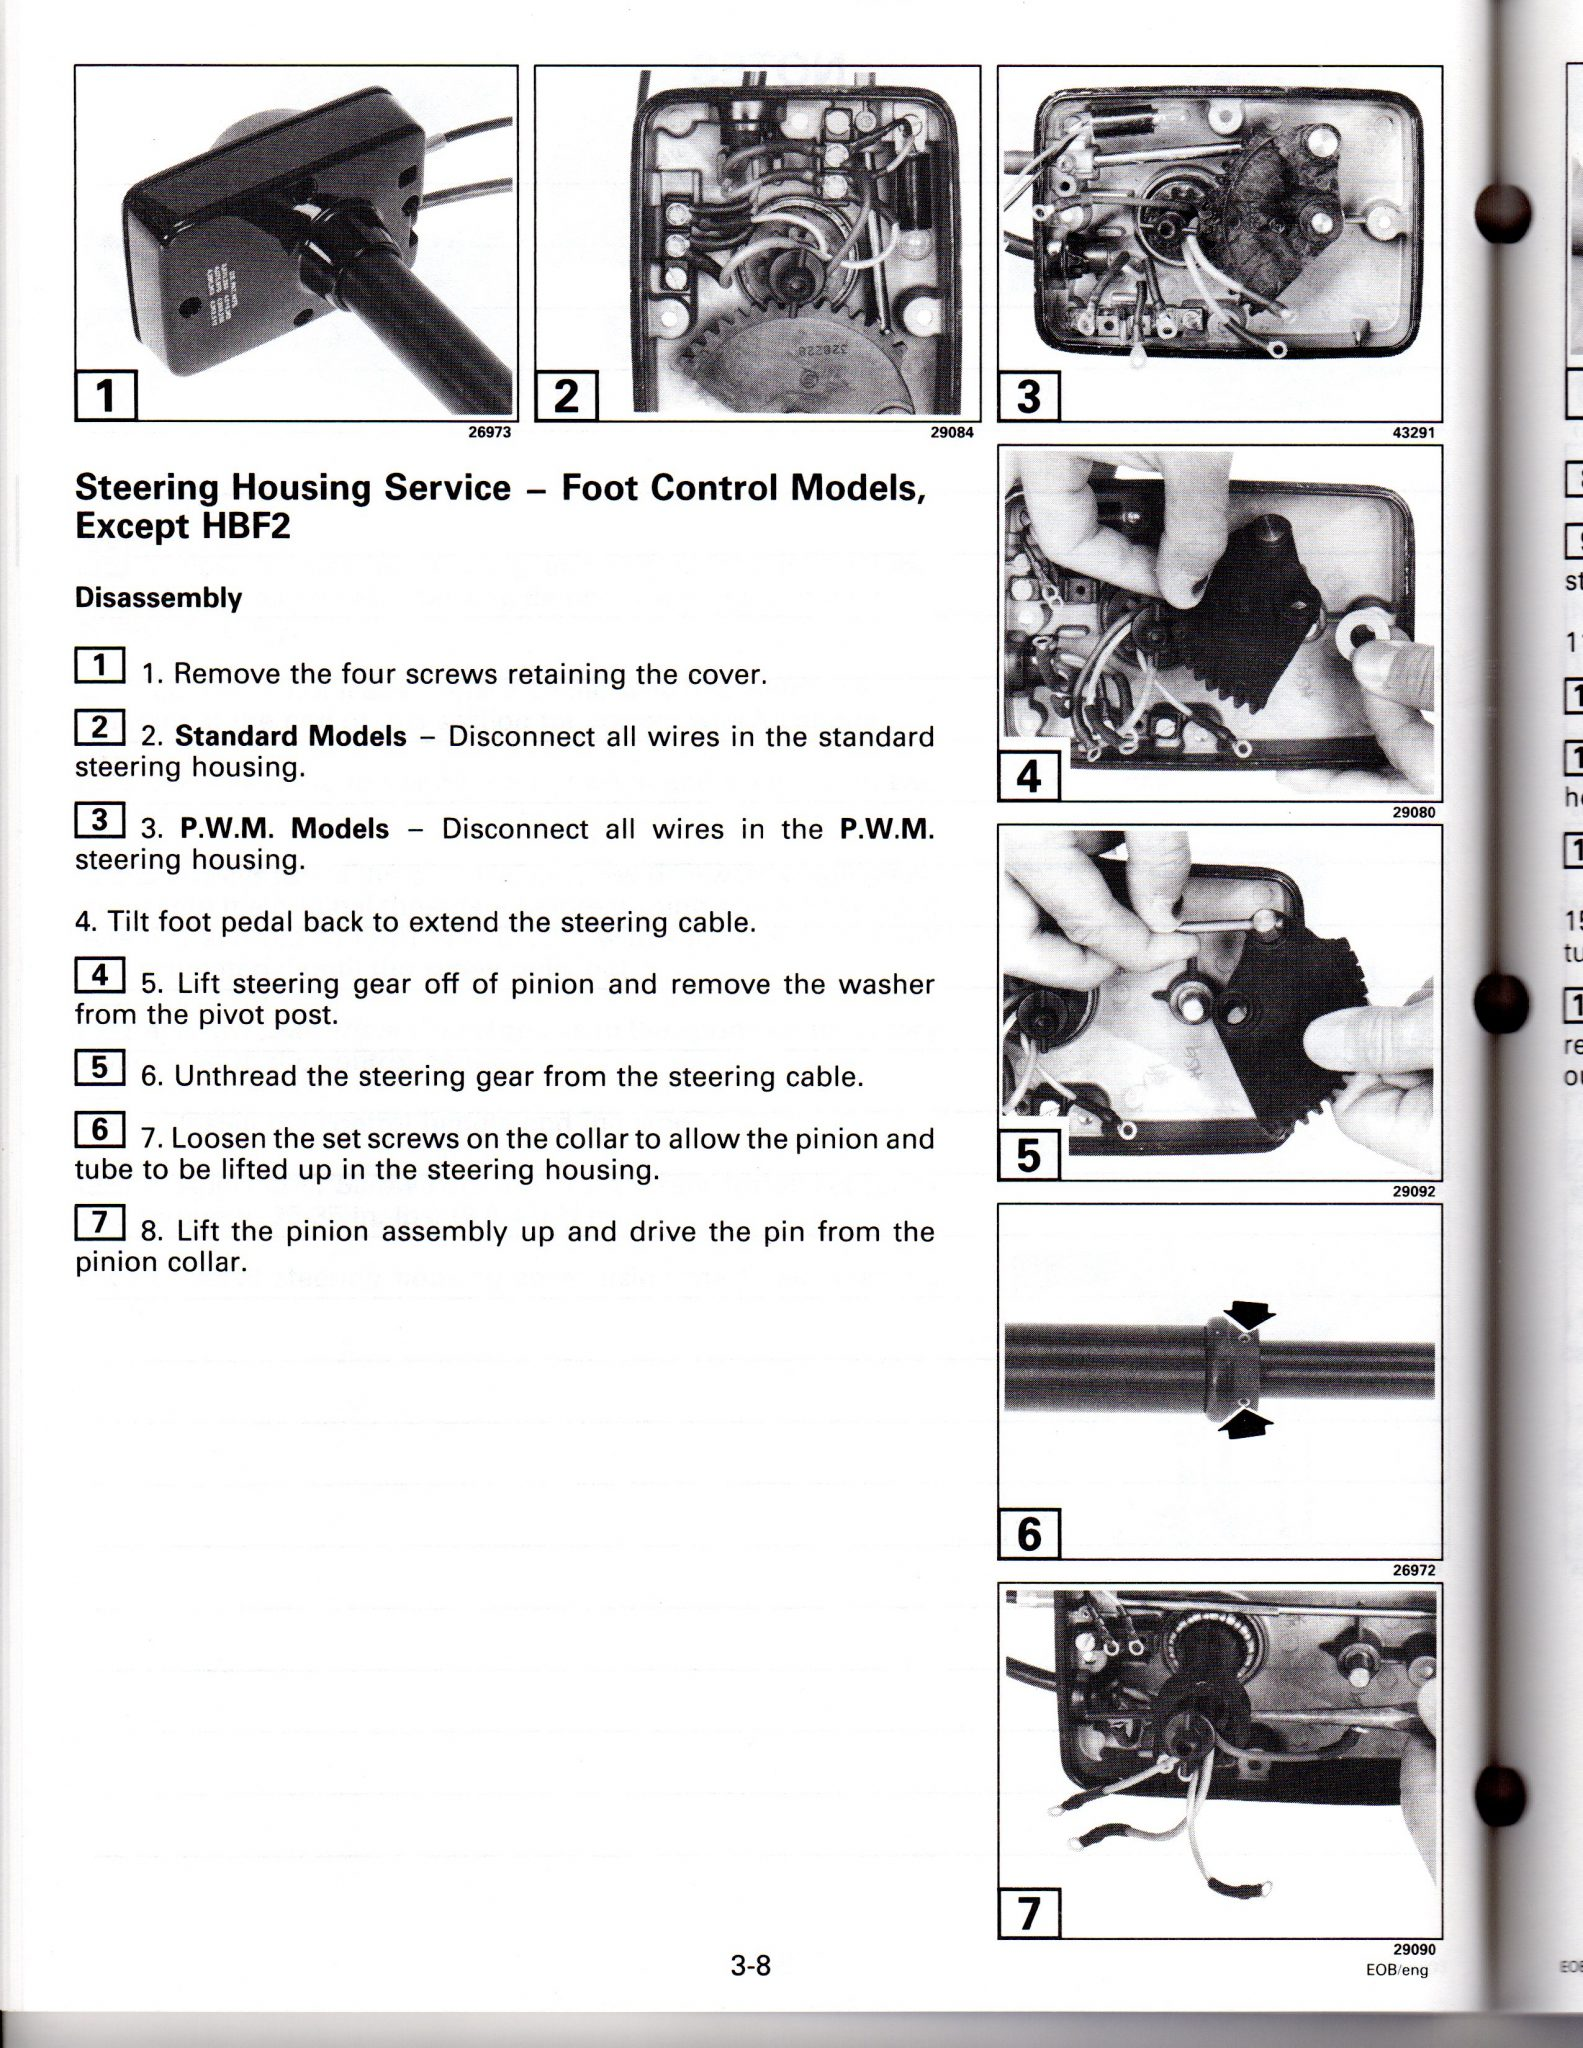 Used 1998 Johnson / Evinrude Service Manual for Electric